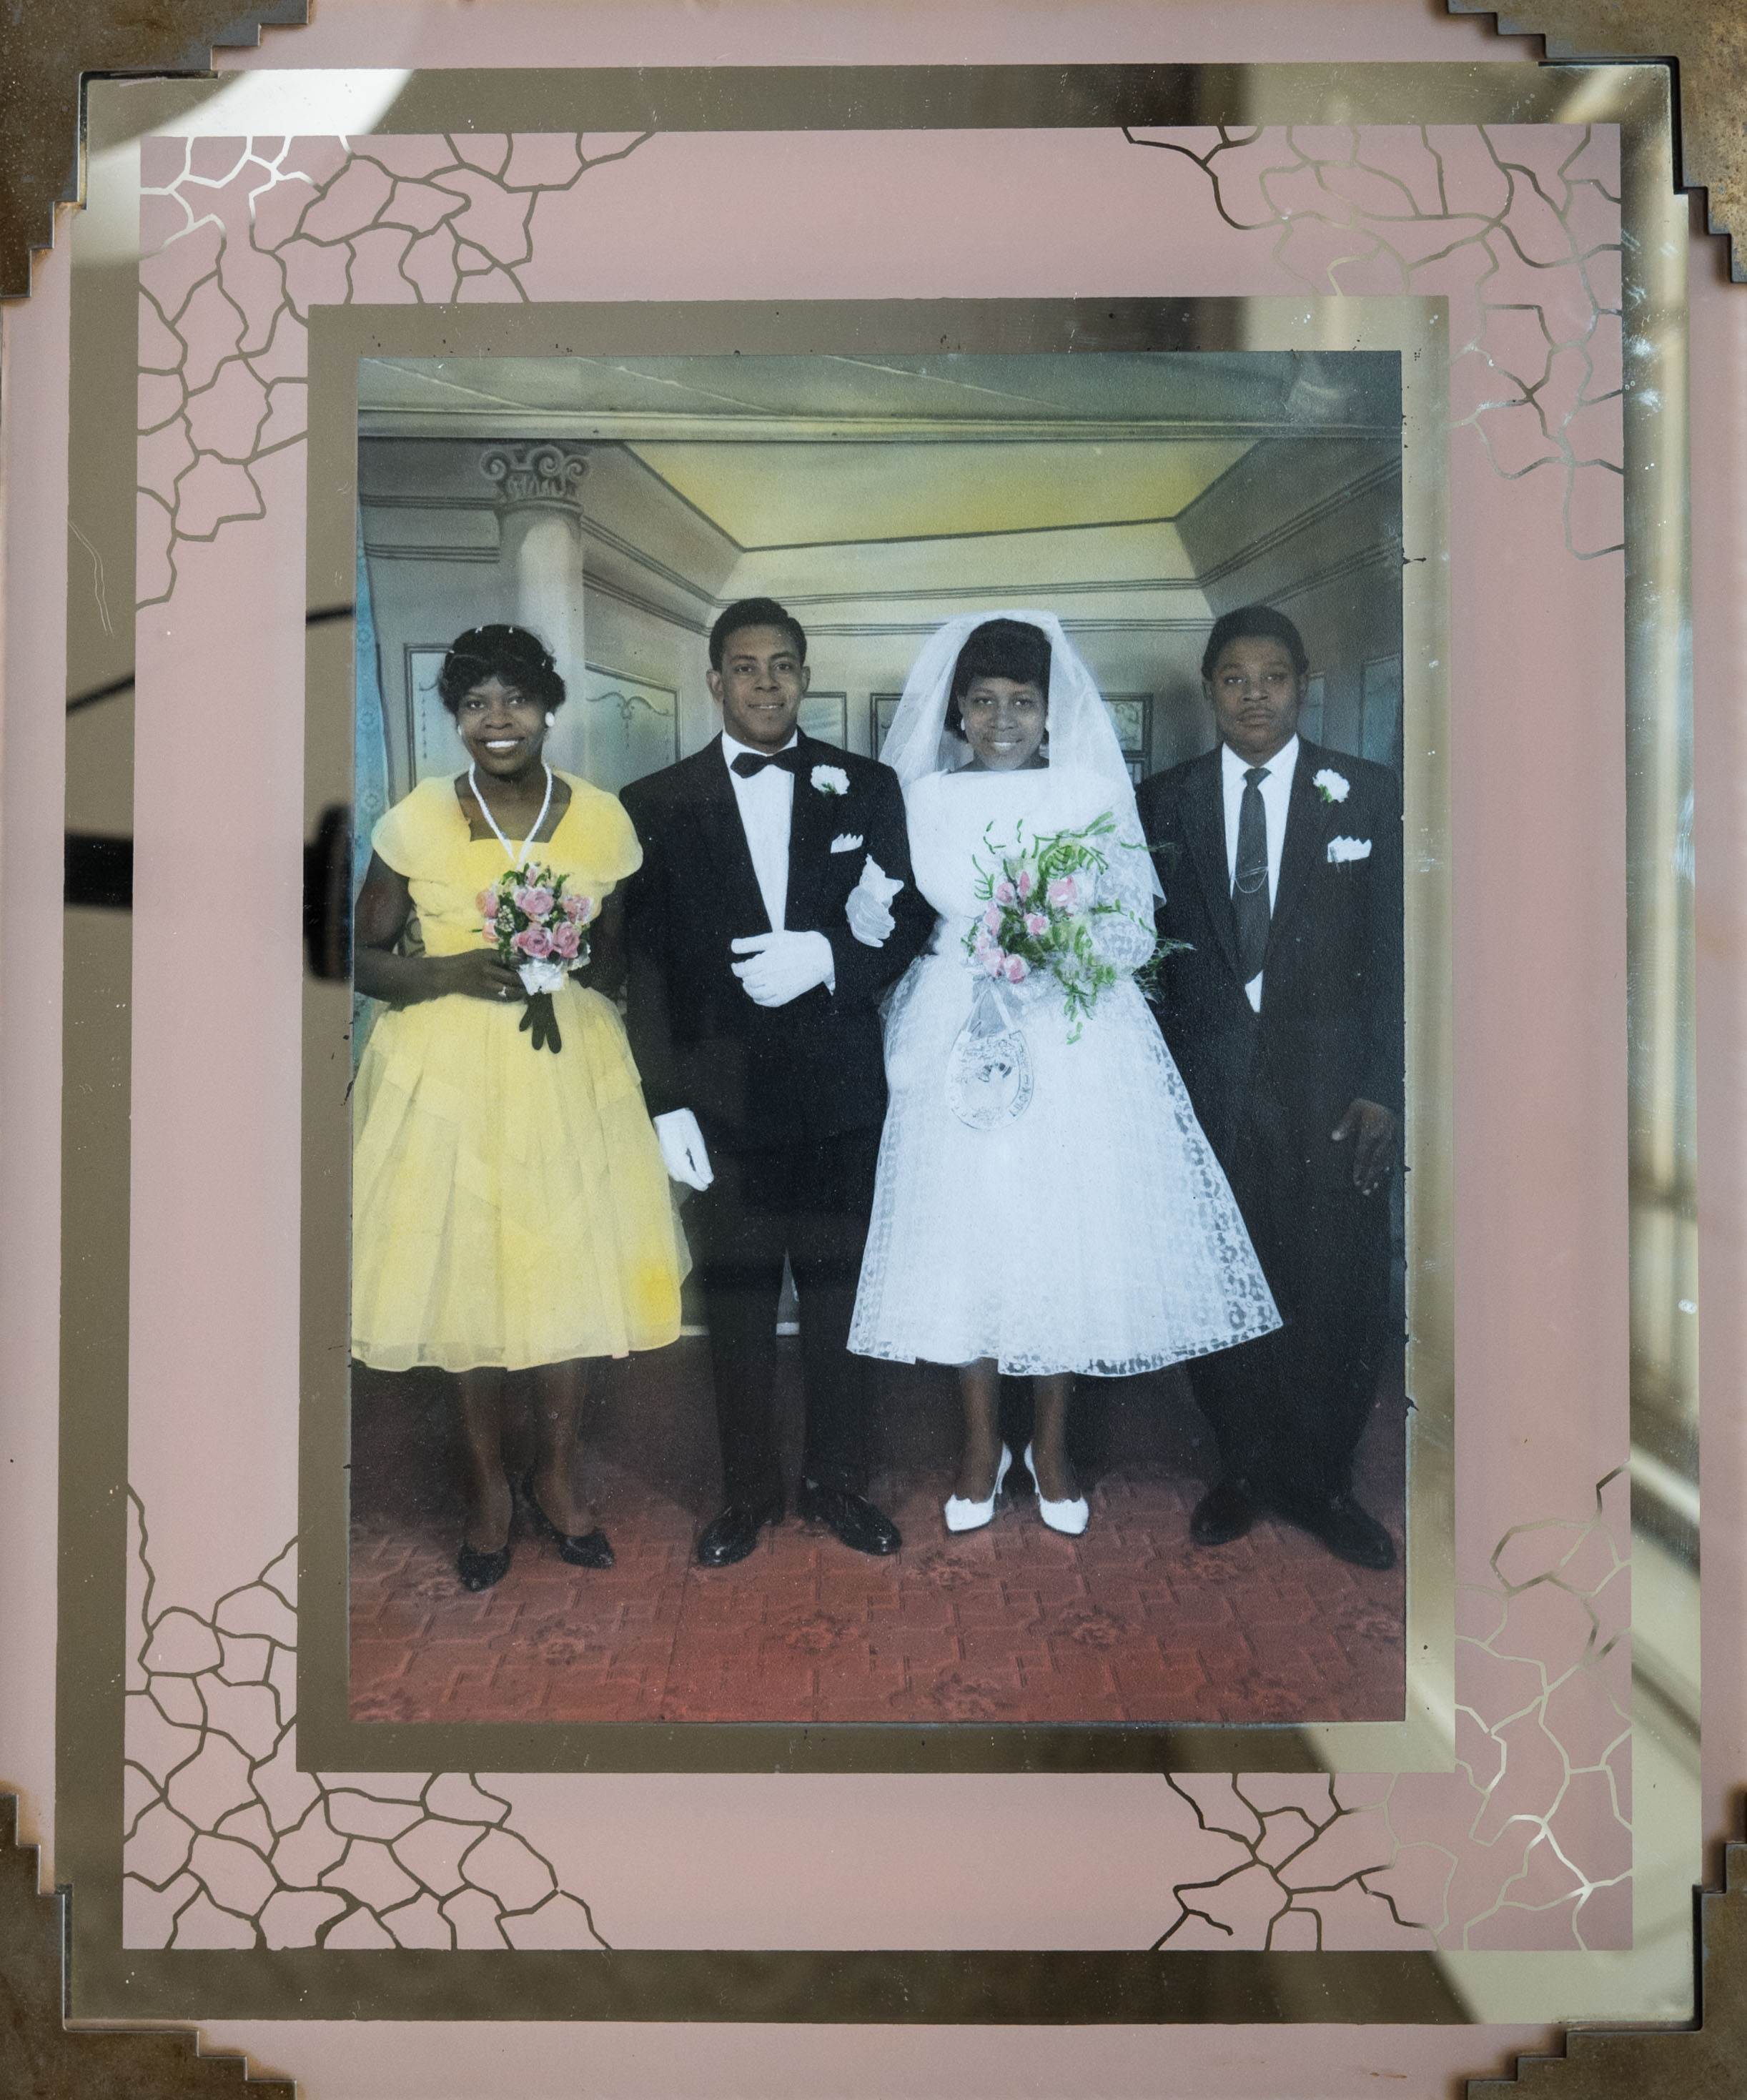 - 'Lester and me married on December 10th 1960 in the Brixton Road registry office'.